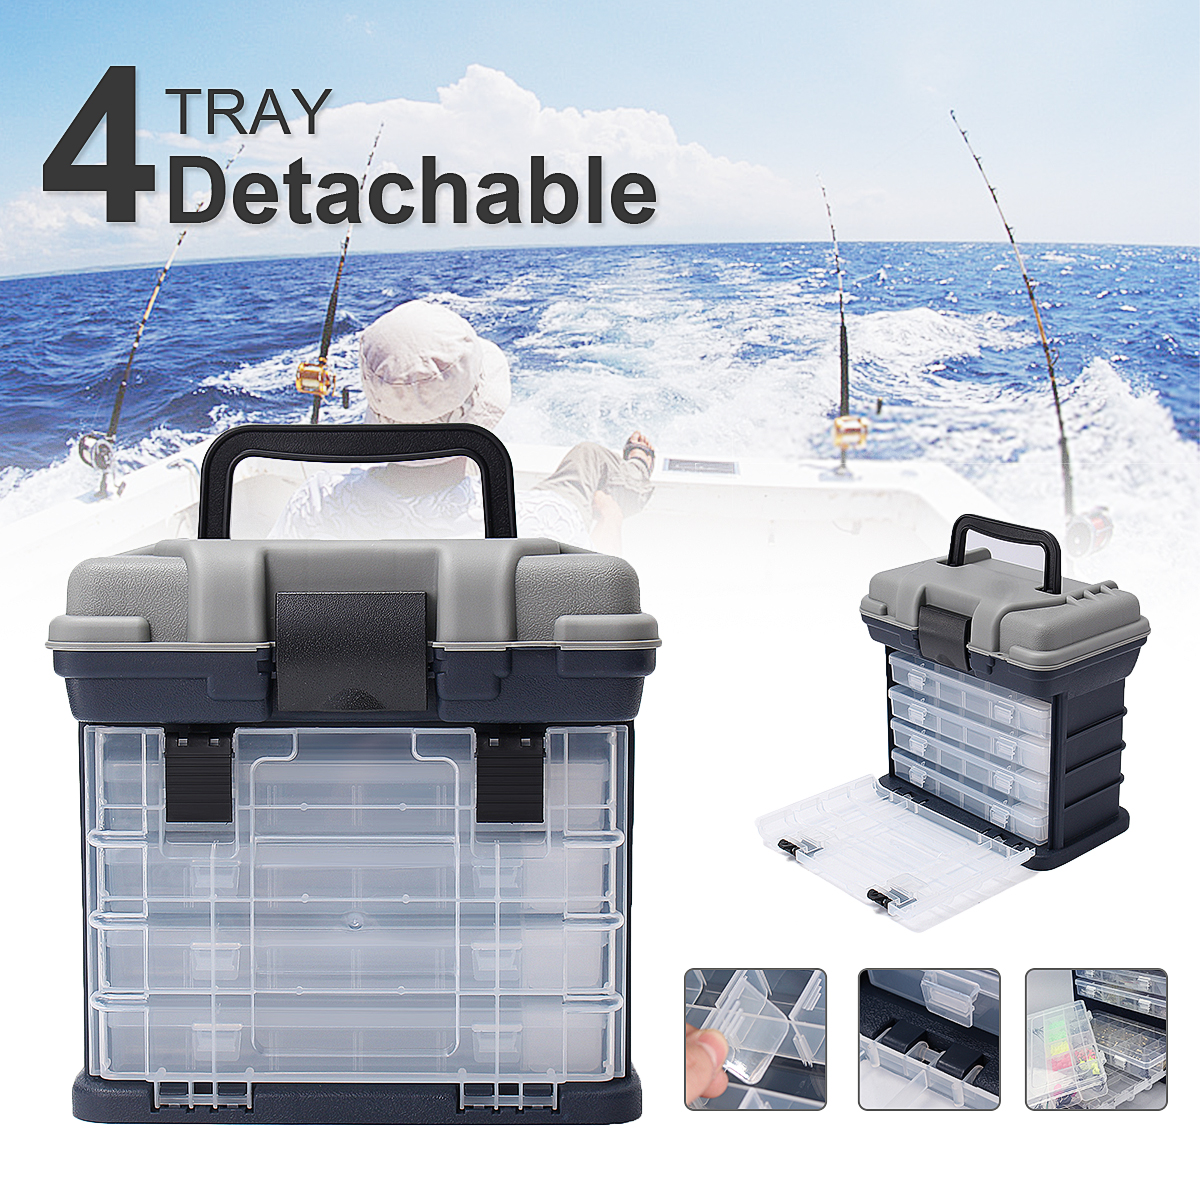 Bobing 270x170x260mm 4 Layers Fishing Tackle Box Heavy Polypropylene Hand Carried Portable Fishing Lures Storage Case Boxes